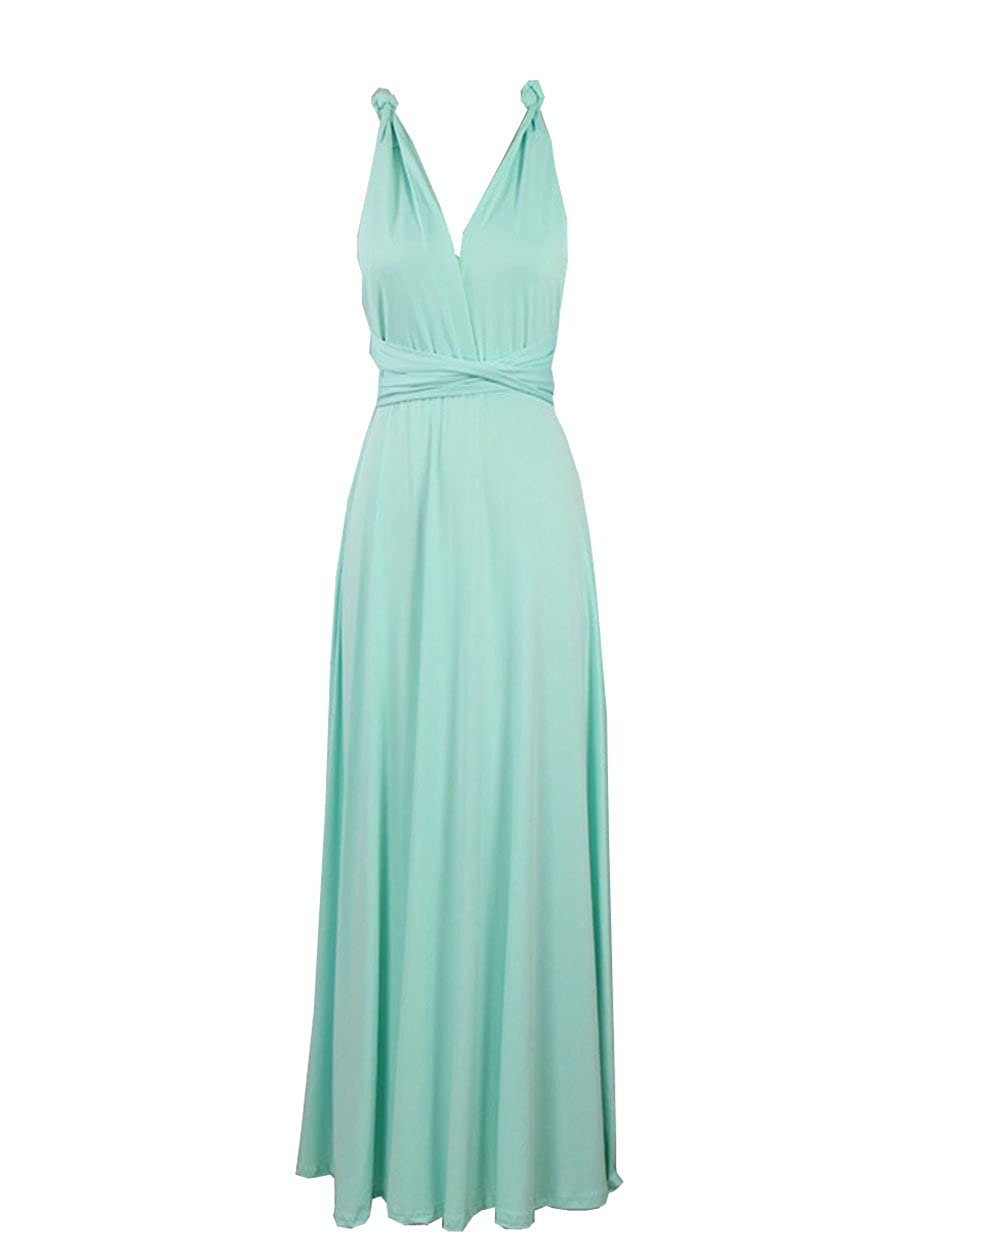 Women's Long Maxi Dress Convertible Wrap Cocktail Gown Bandage Bridesmaid Dress